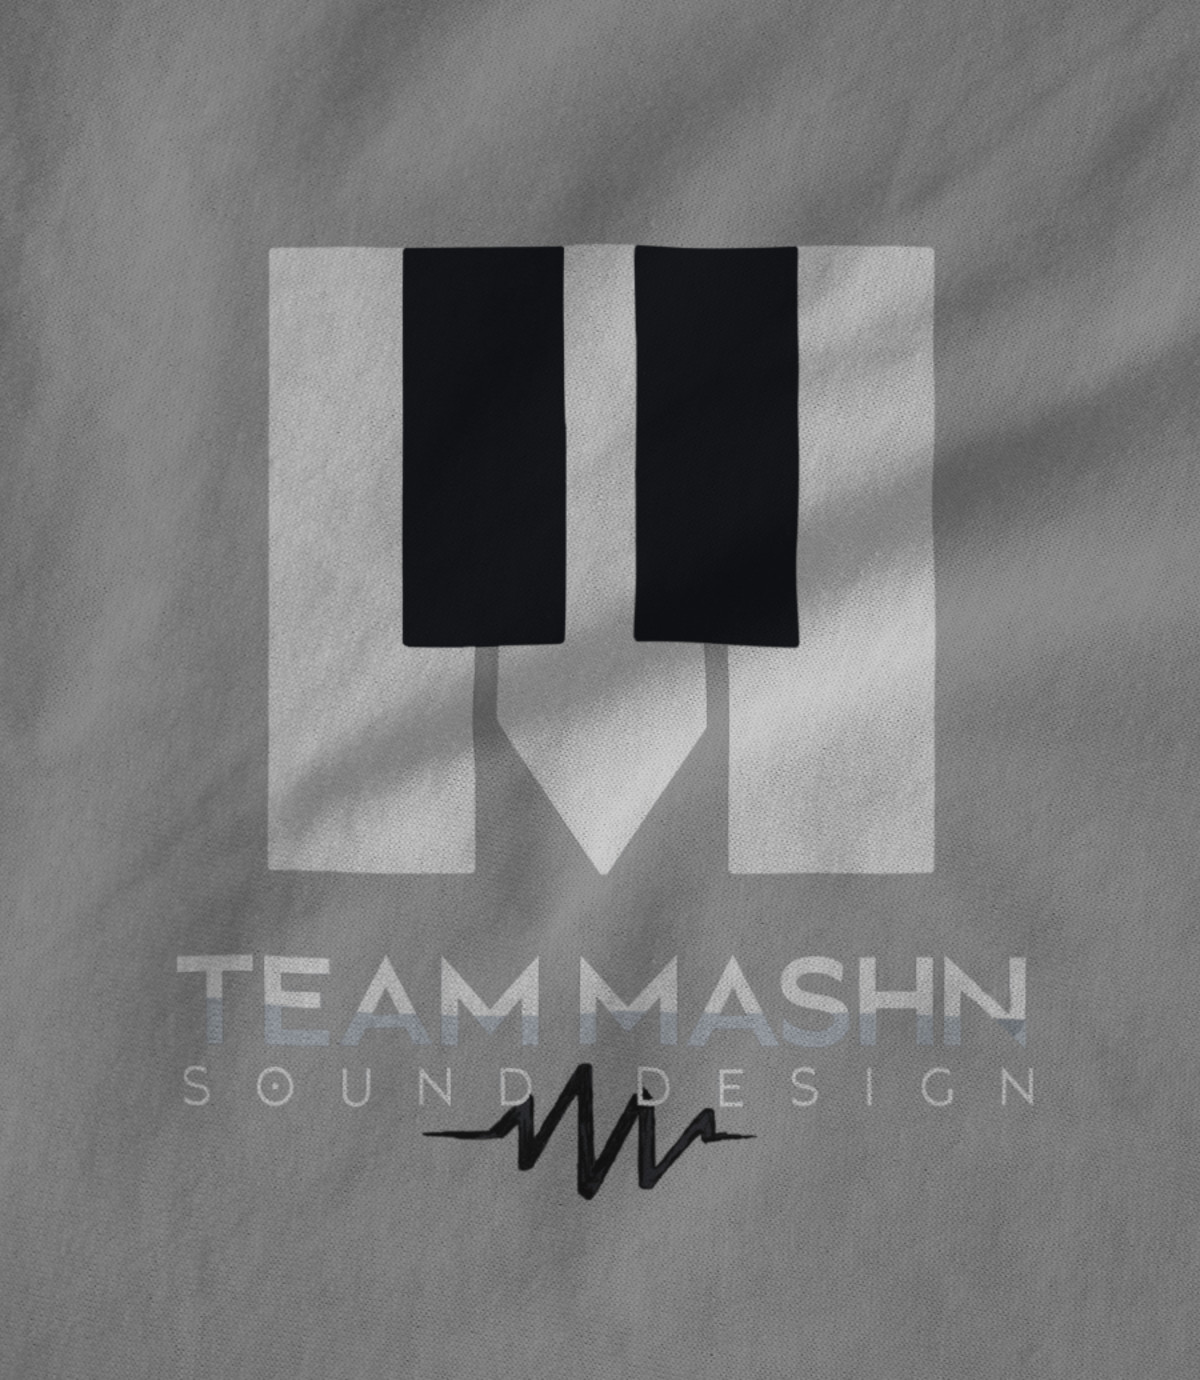 Tmsd team mashn sound design 1543802951